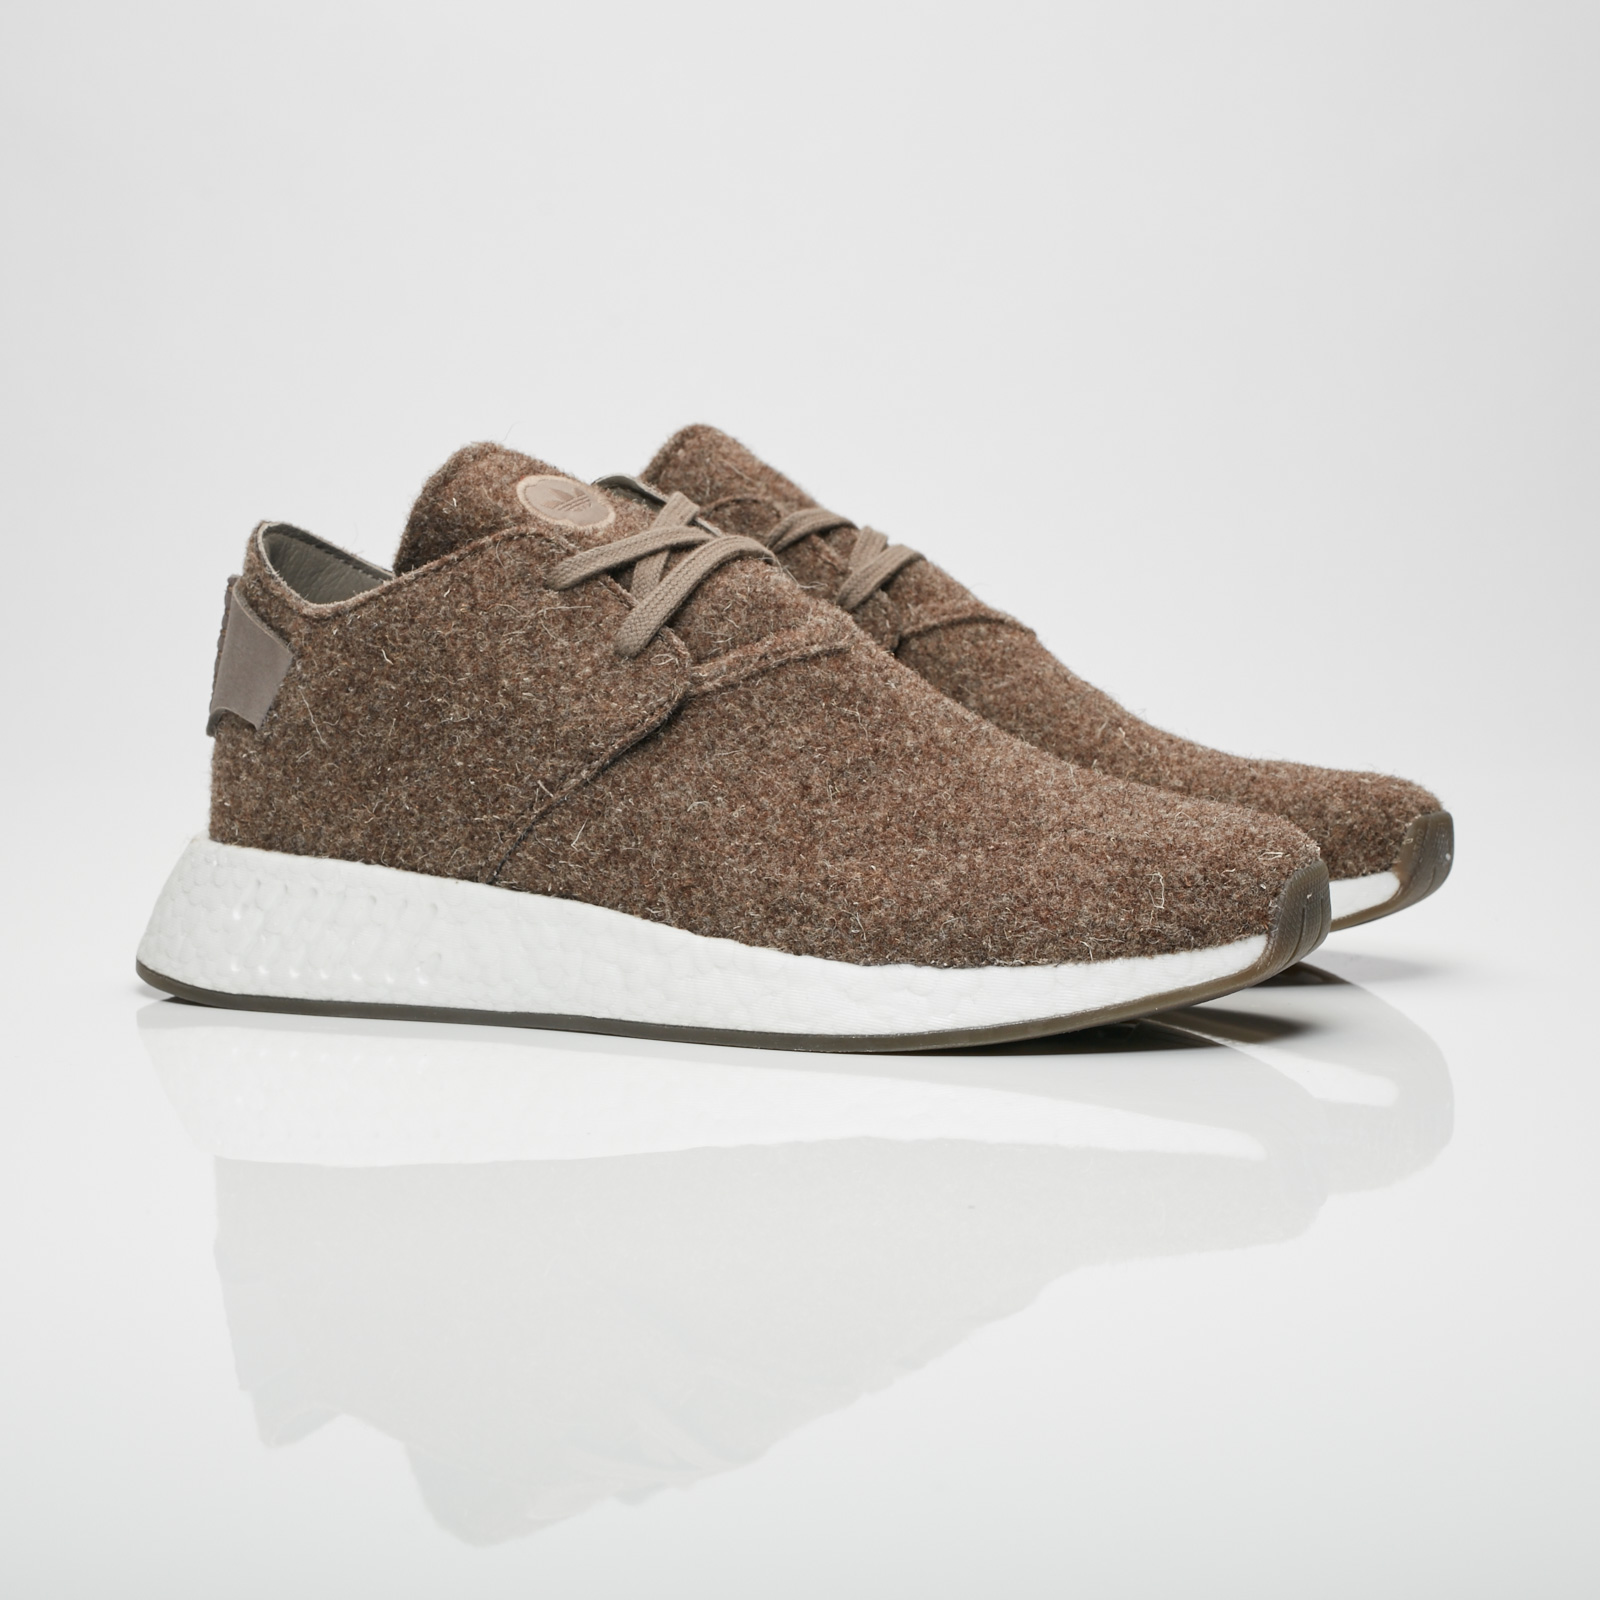 06e6aac90ae3 adidas NMD C2 - Cg3781 - Sneakersnstuff